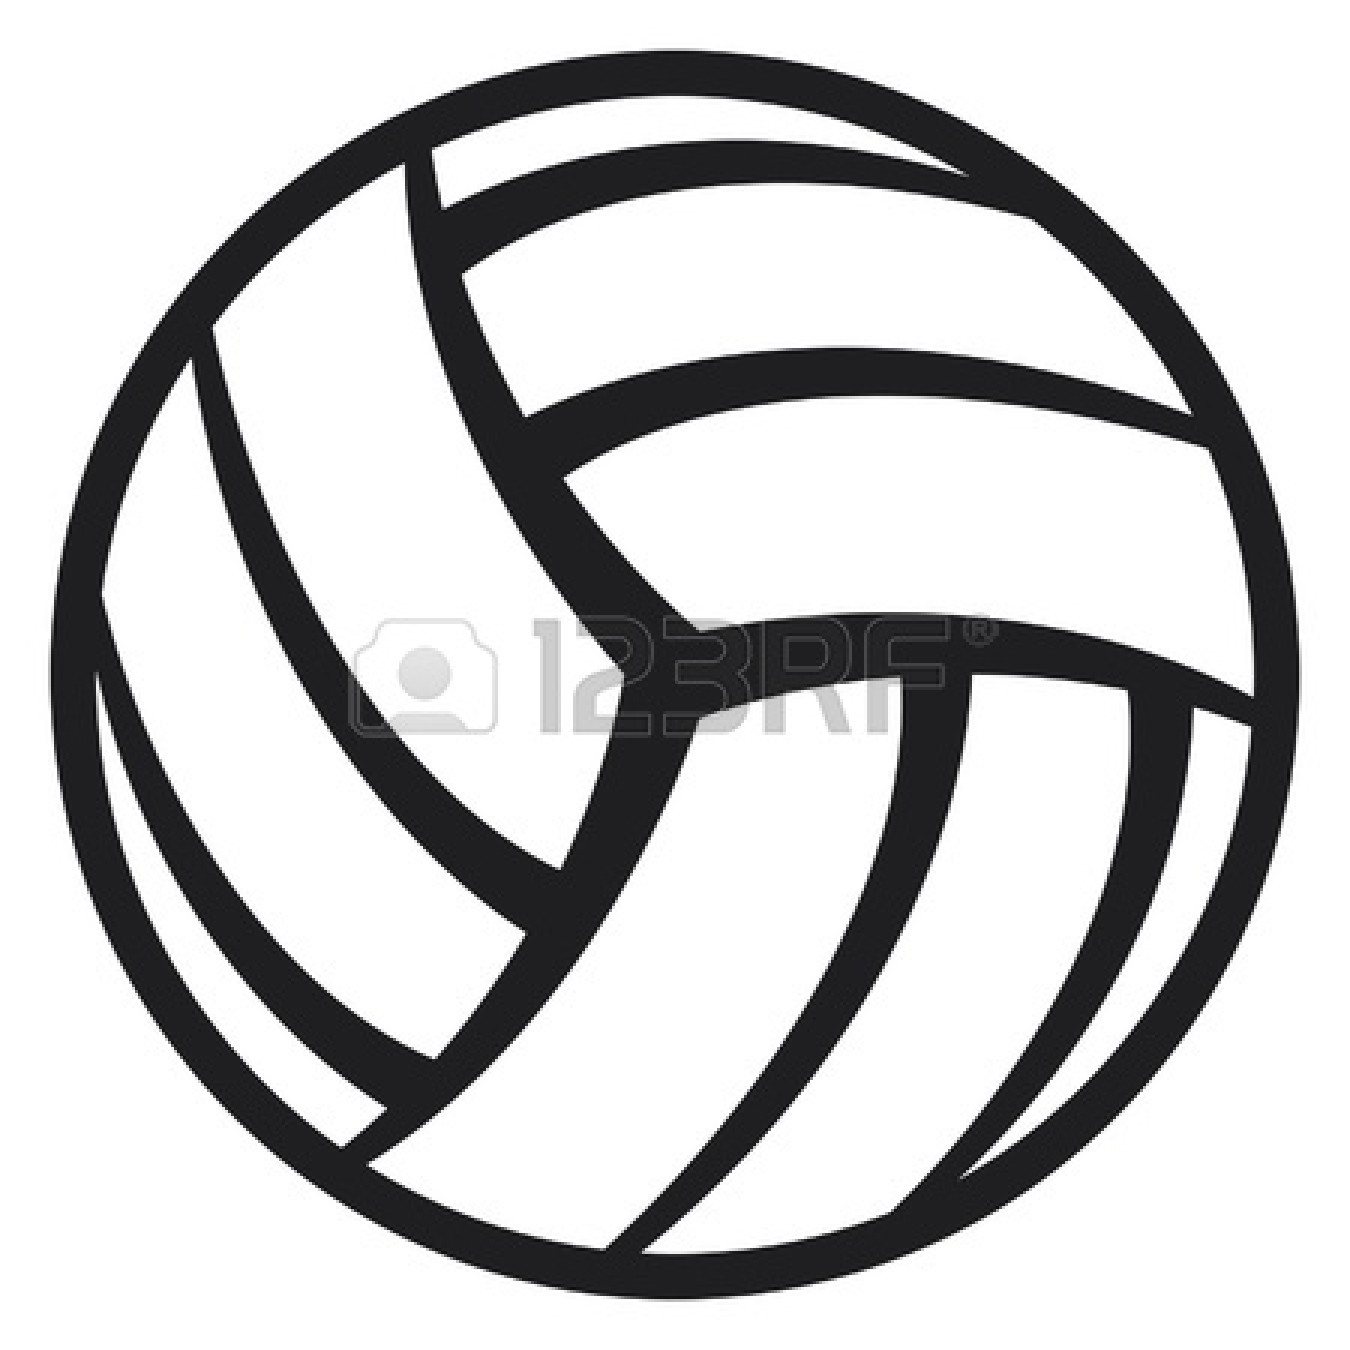 Volleyball Court Diagram Wiring Database Electronic Circuit Diagramquot Stock Photo And Royaltyfree Images On Clipart Free Download Best Beach Dimensions In Feet 1350x1350